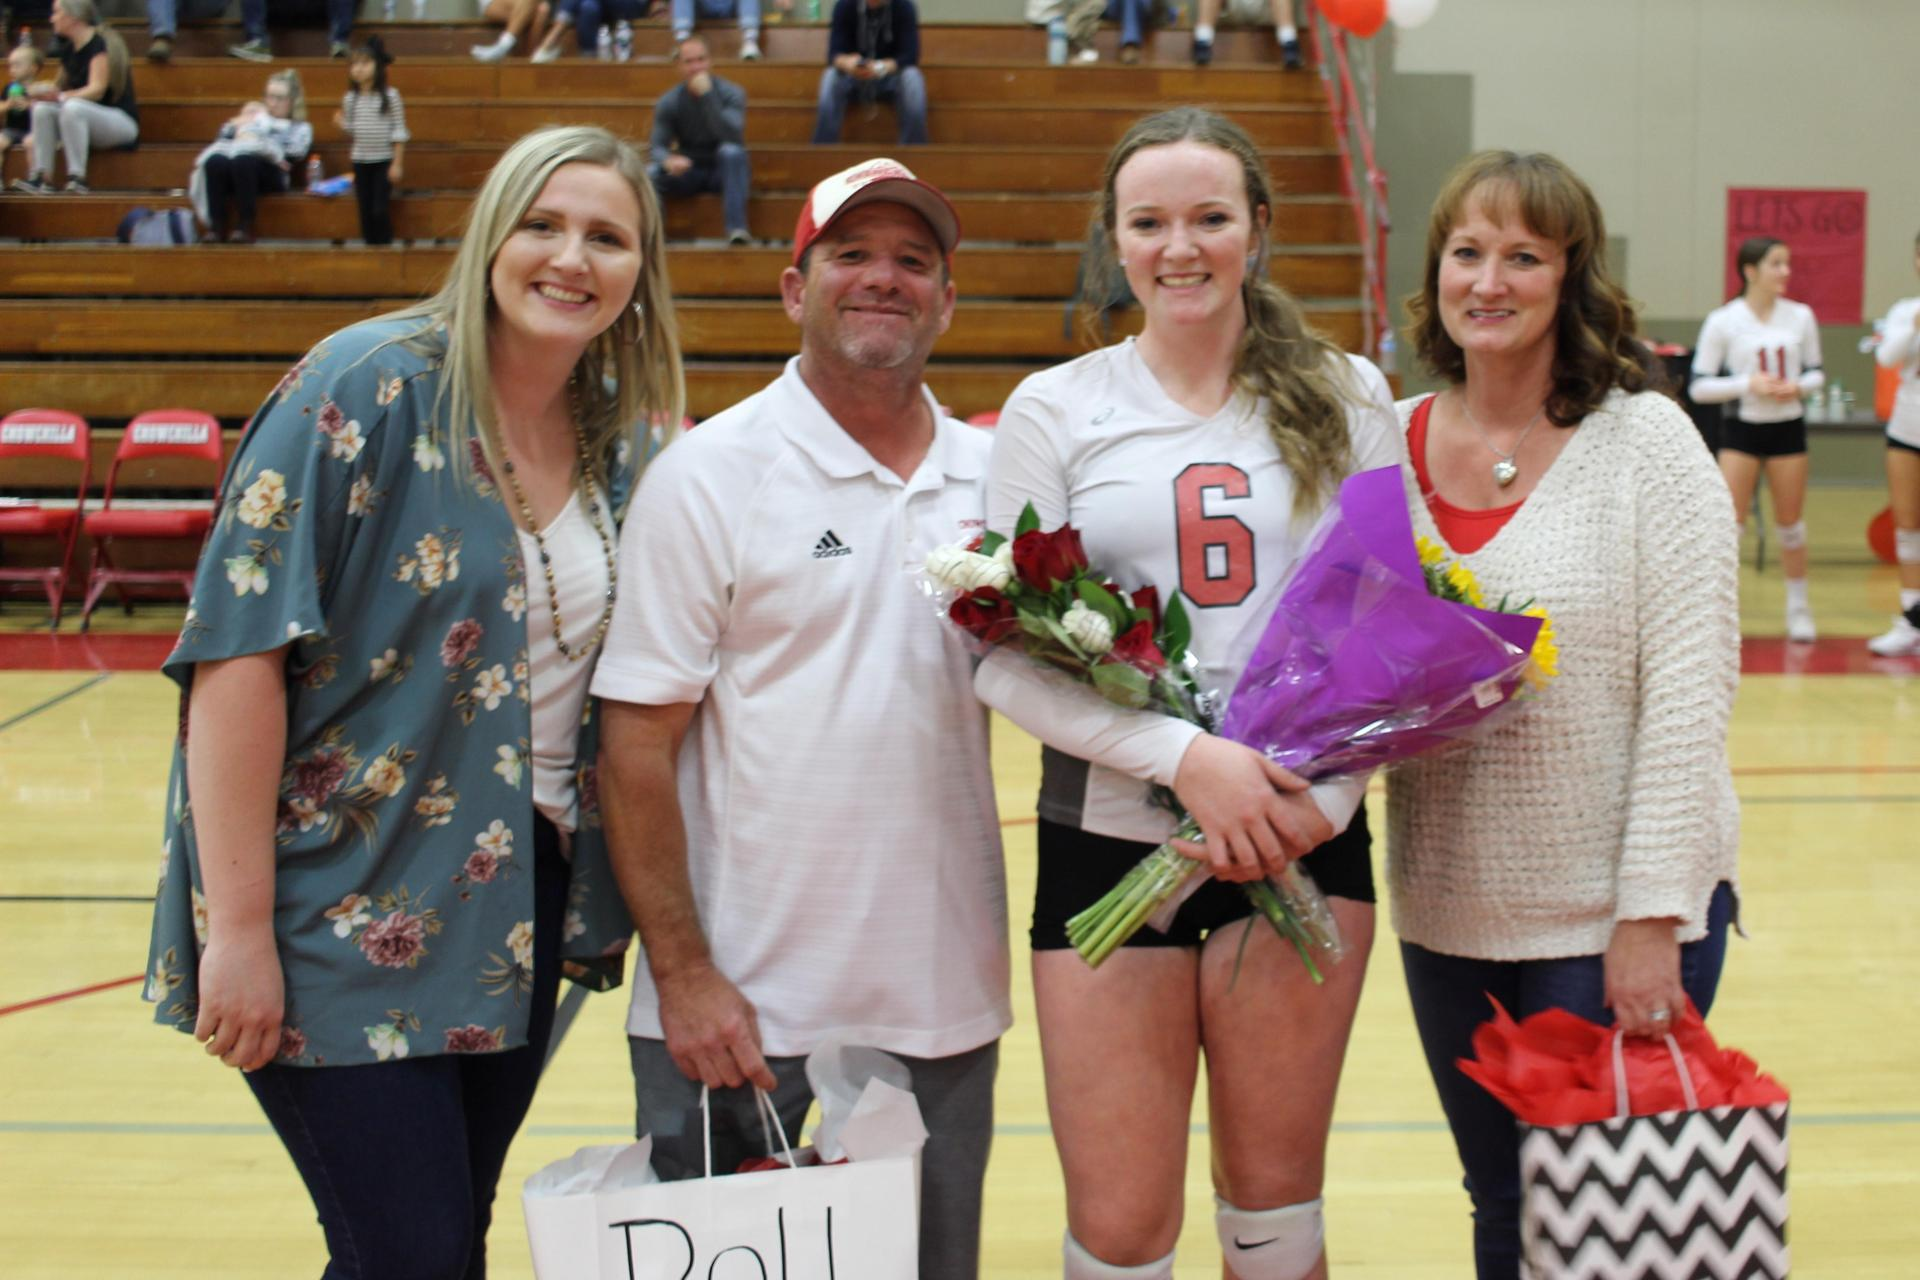 Tori Calley with family